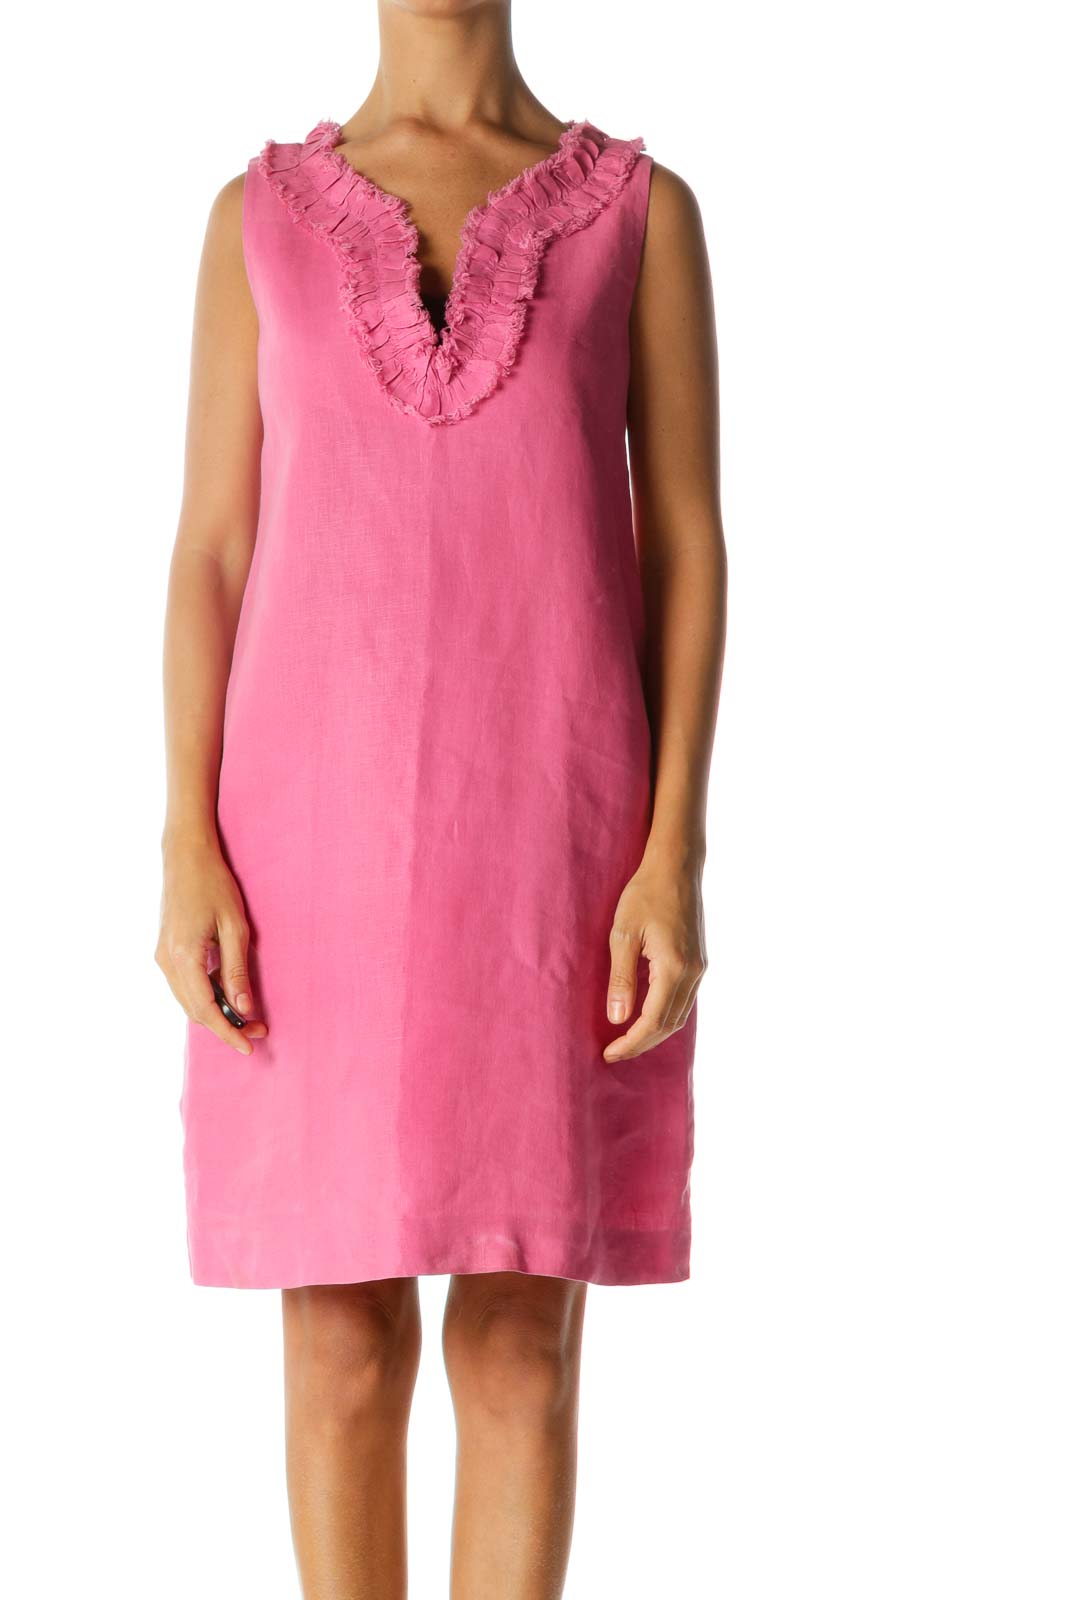 Pink Linen Cotton Ruffled Raw Hem Neckline Accent Dress